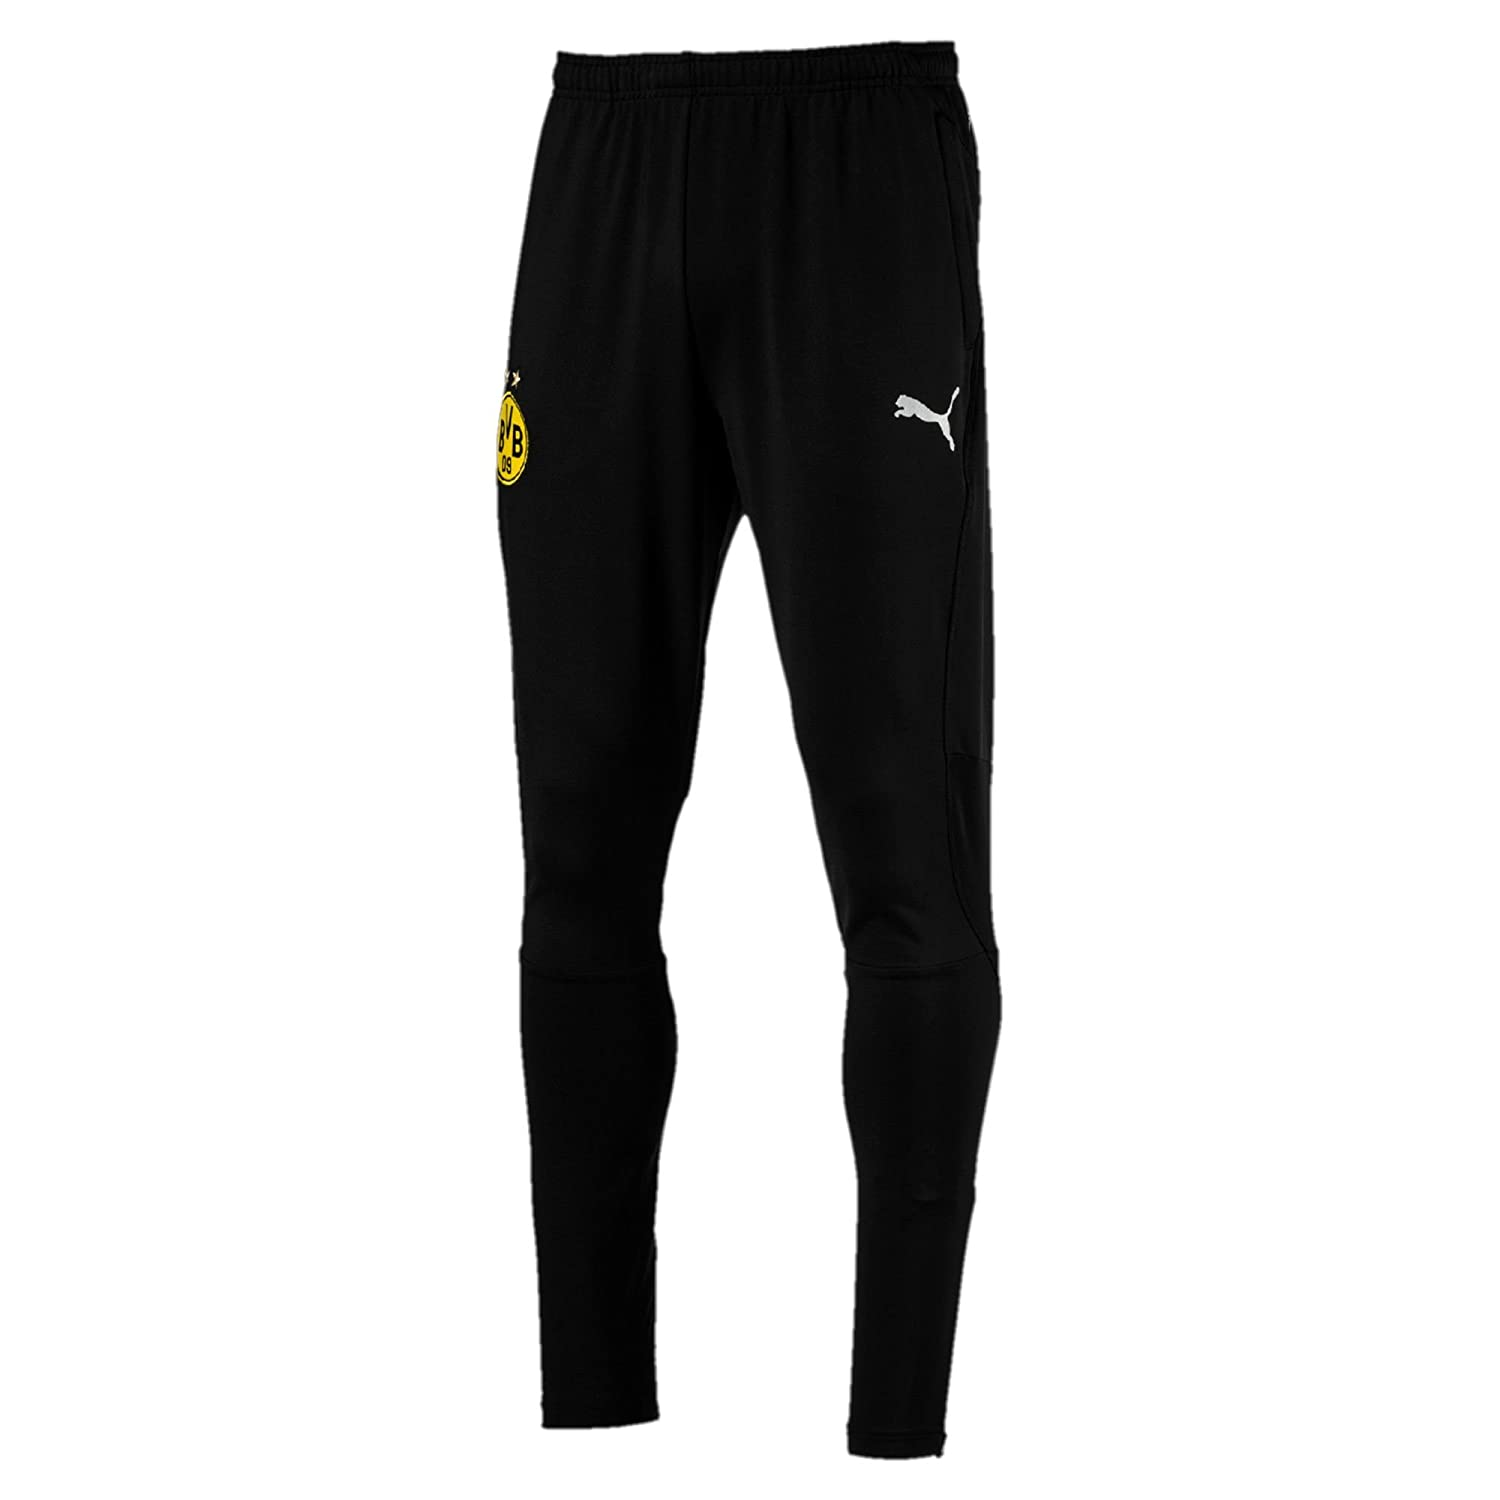 Puma Herren BVB Training Pants Tapered Pockets with Zippers Hose 753494